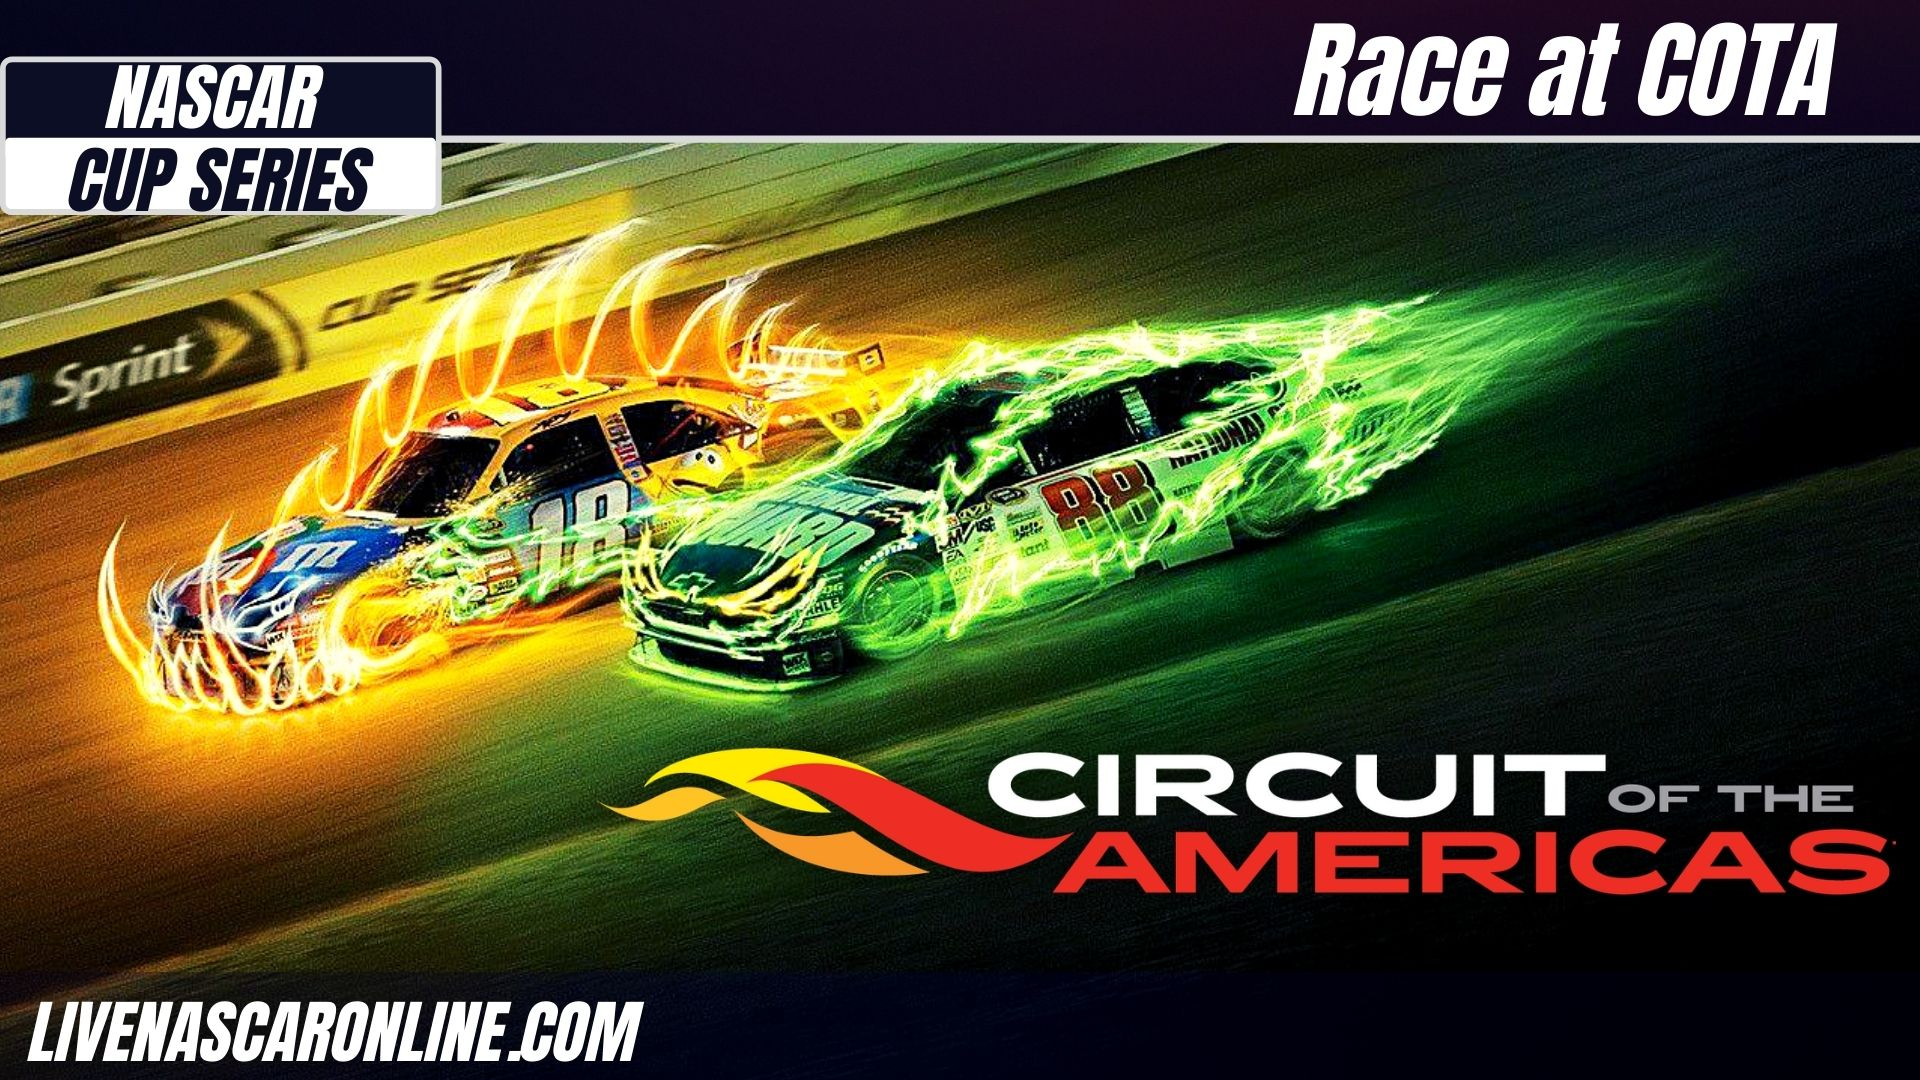 NASCAR Cup Series Race at COTA Live Stream 2021